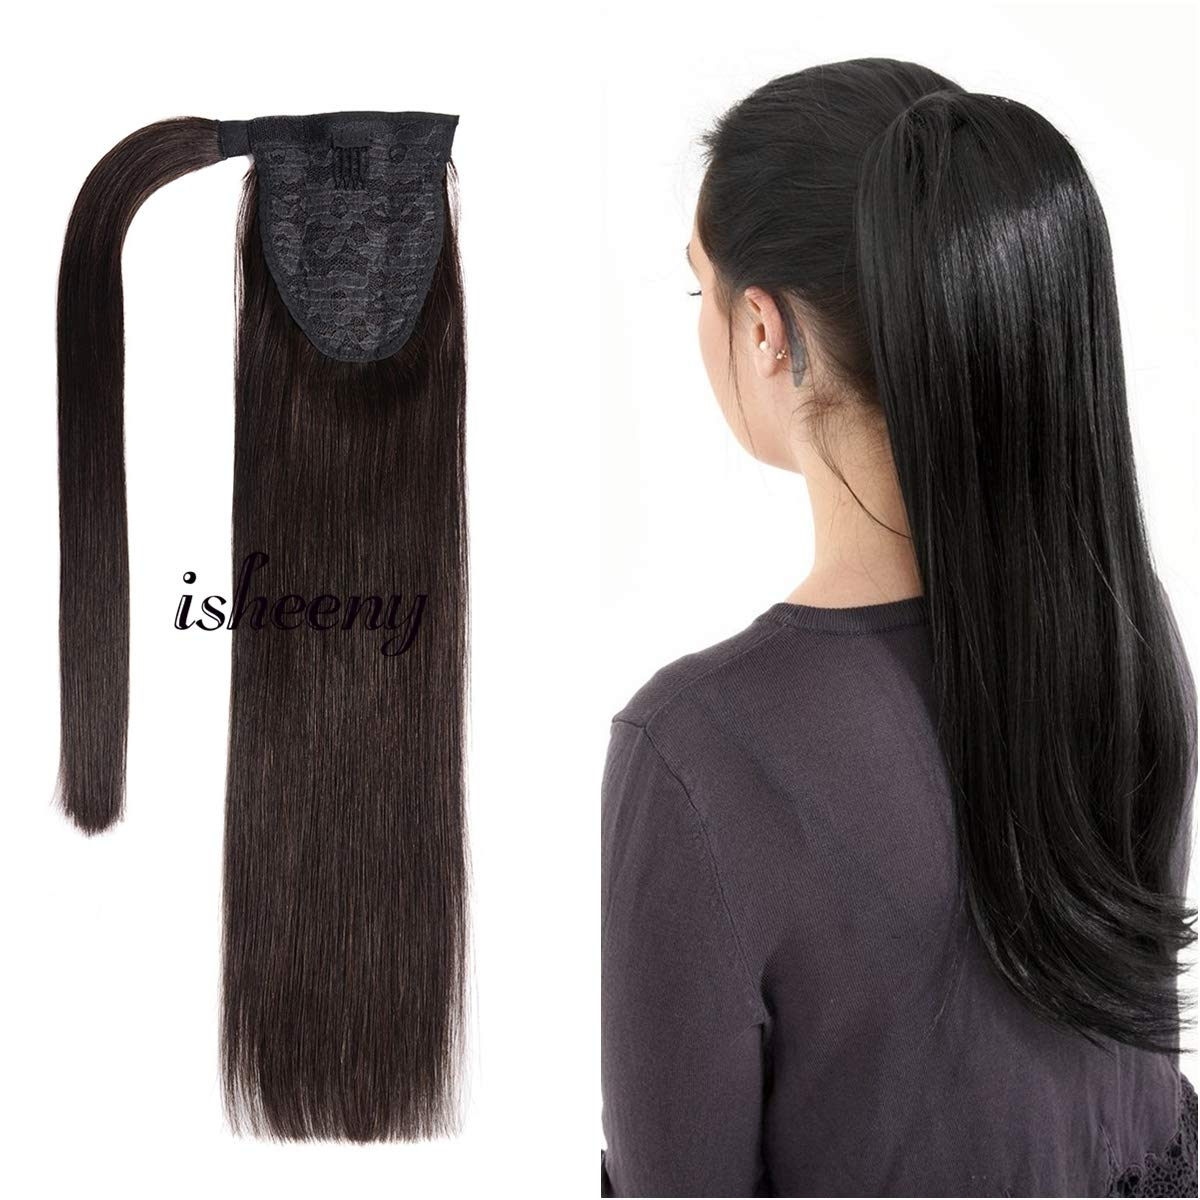 Human Ponytail Extensions Piece Women